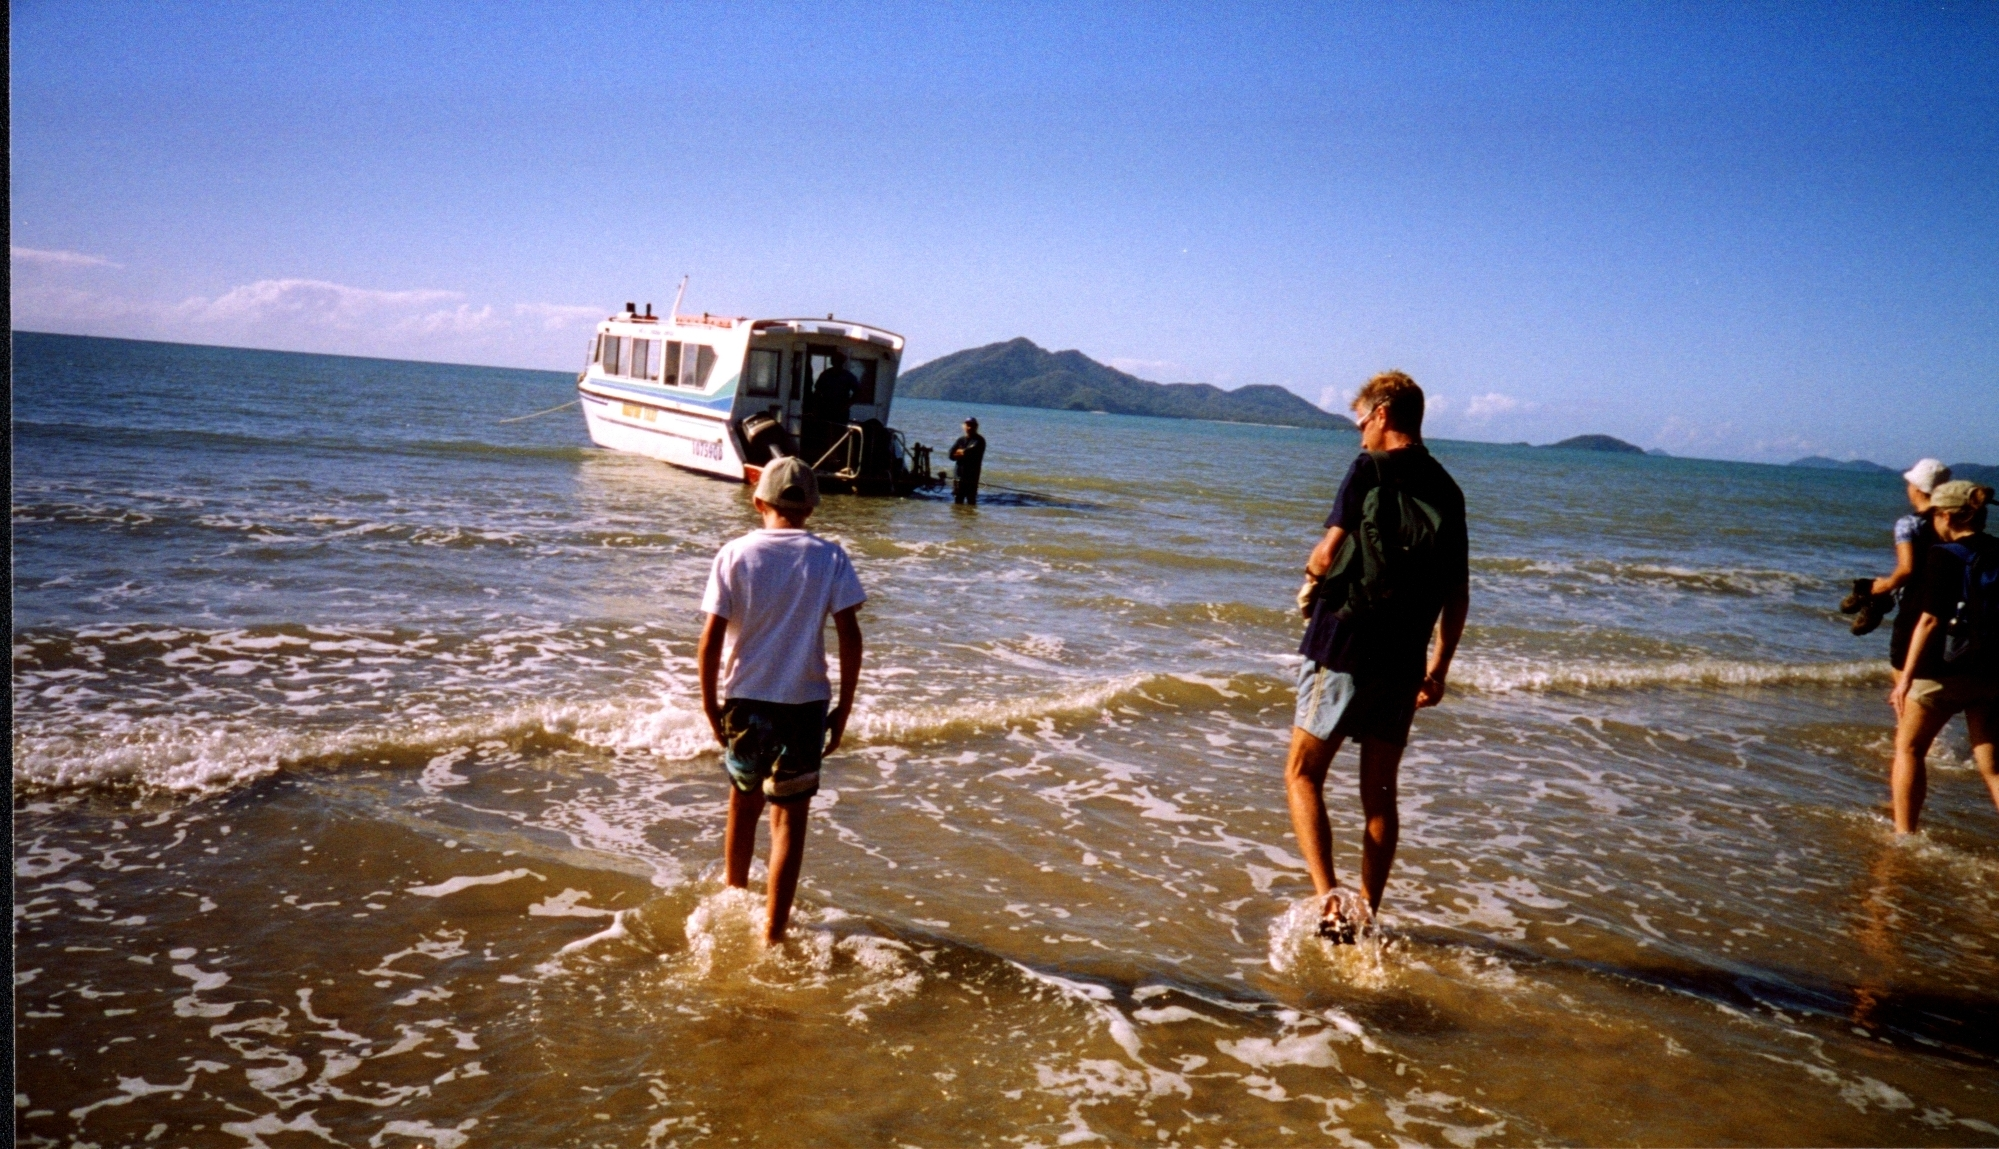 Dunk Island Places To Stay: Fatima Saysell